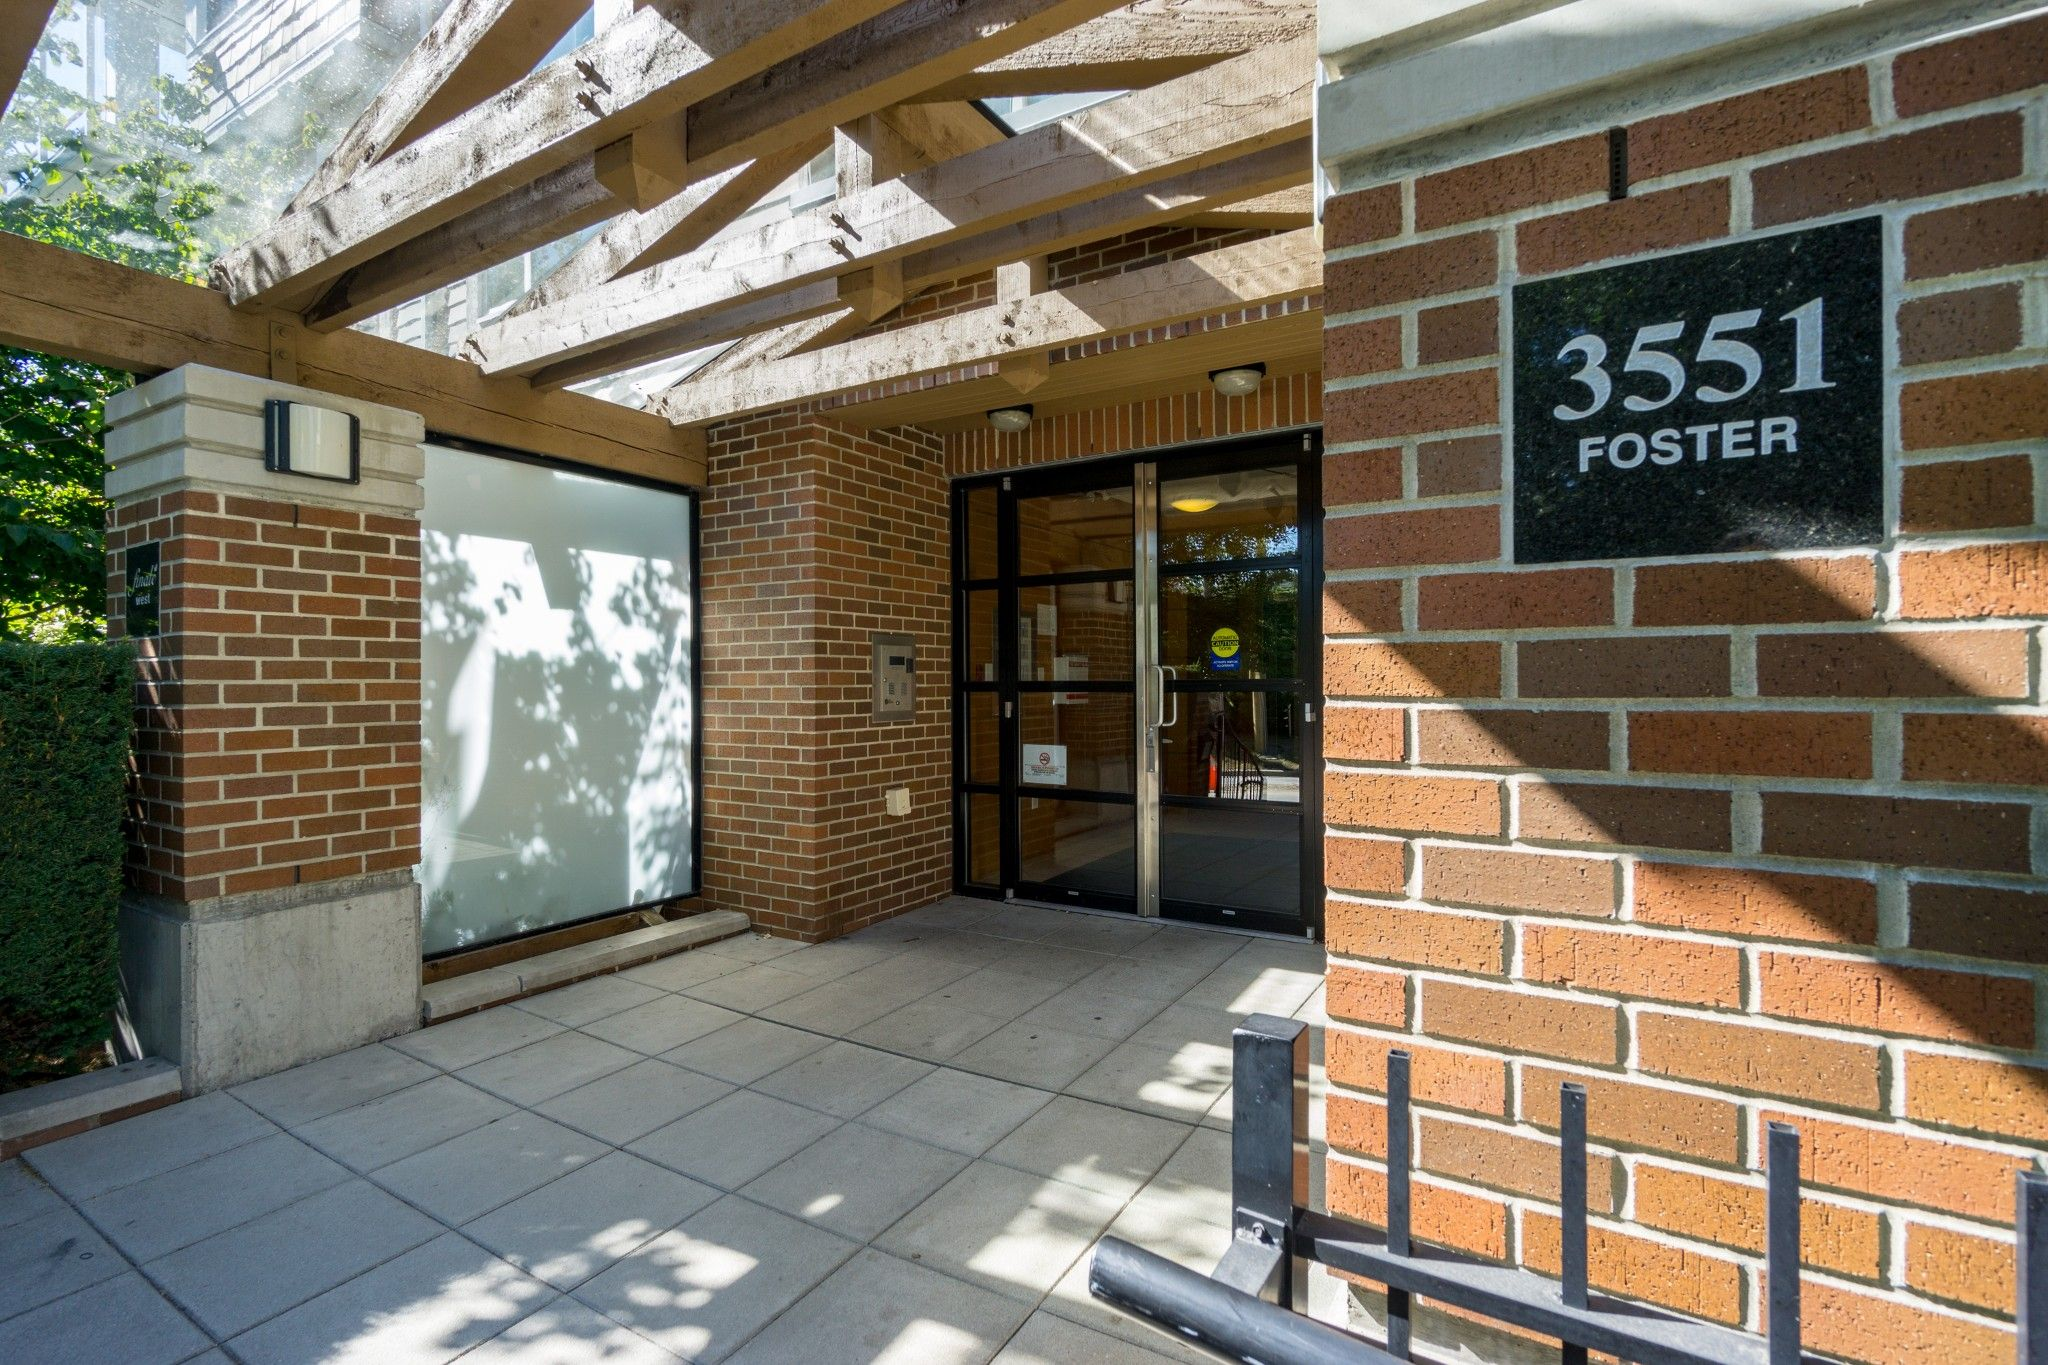 Photo 27: Photos: 208 3551 FOSTER Avenue in Vancouver: Collingwood VE Condo for sale (Vancouver East)  : MLS®# R2291555